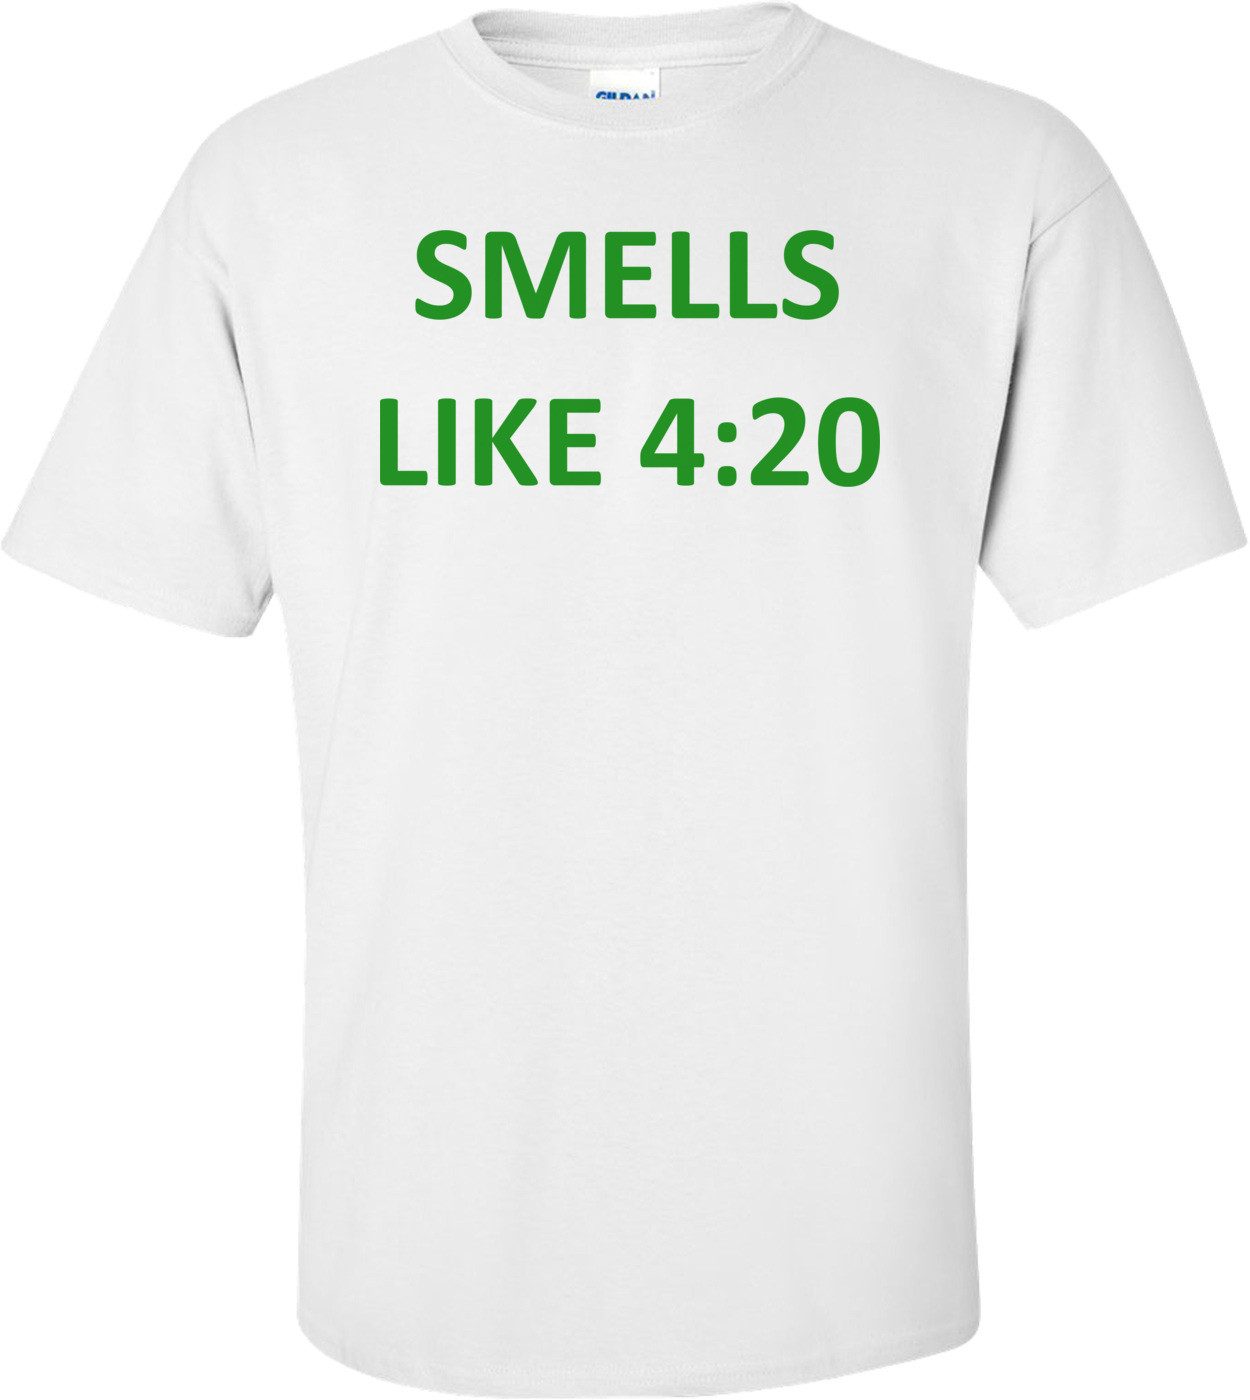 SMELLS LIKE 4:20 Shirt